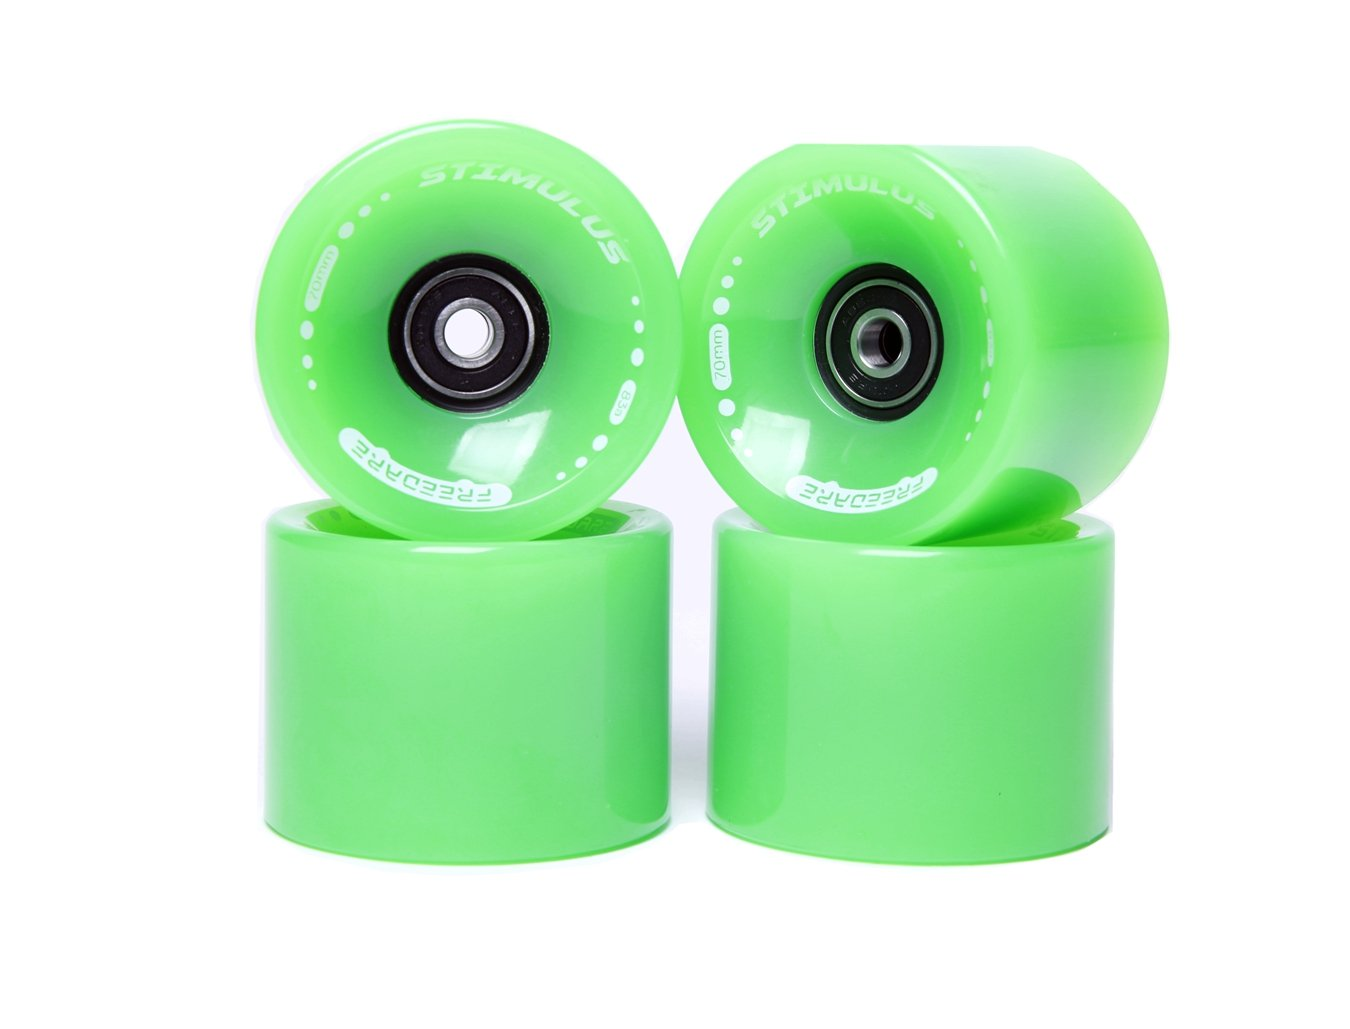 FREEDARE 70mm Longboard Wheels with ABEC-7 Bearings and Spacers(Green,Set of 4) by FREEDARE